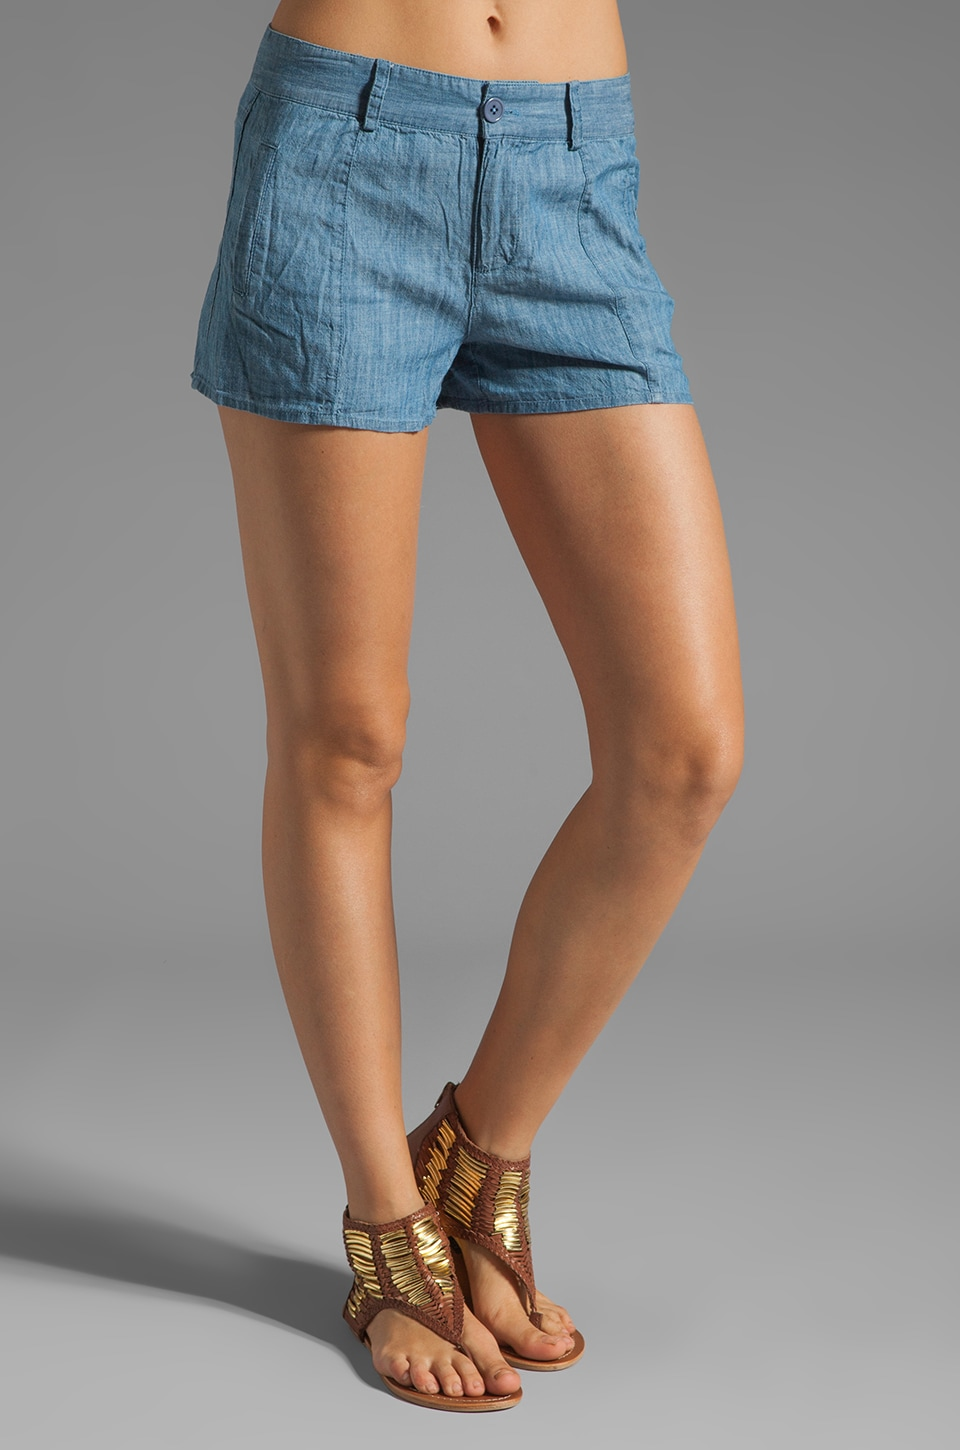 BB Dakota Lismore Chambray Shorts in Dark Denim